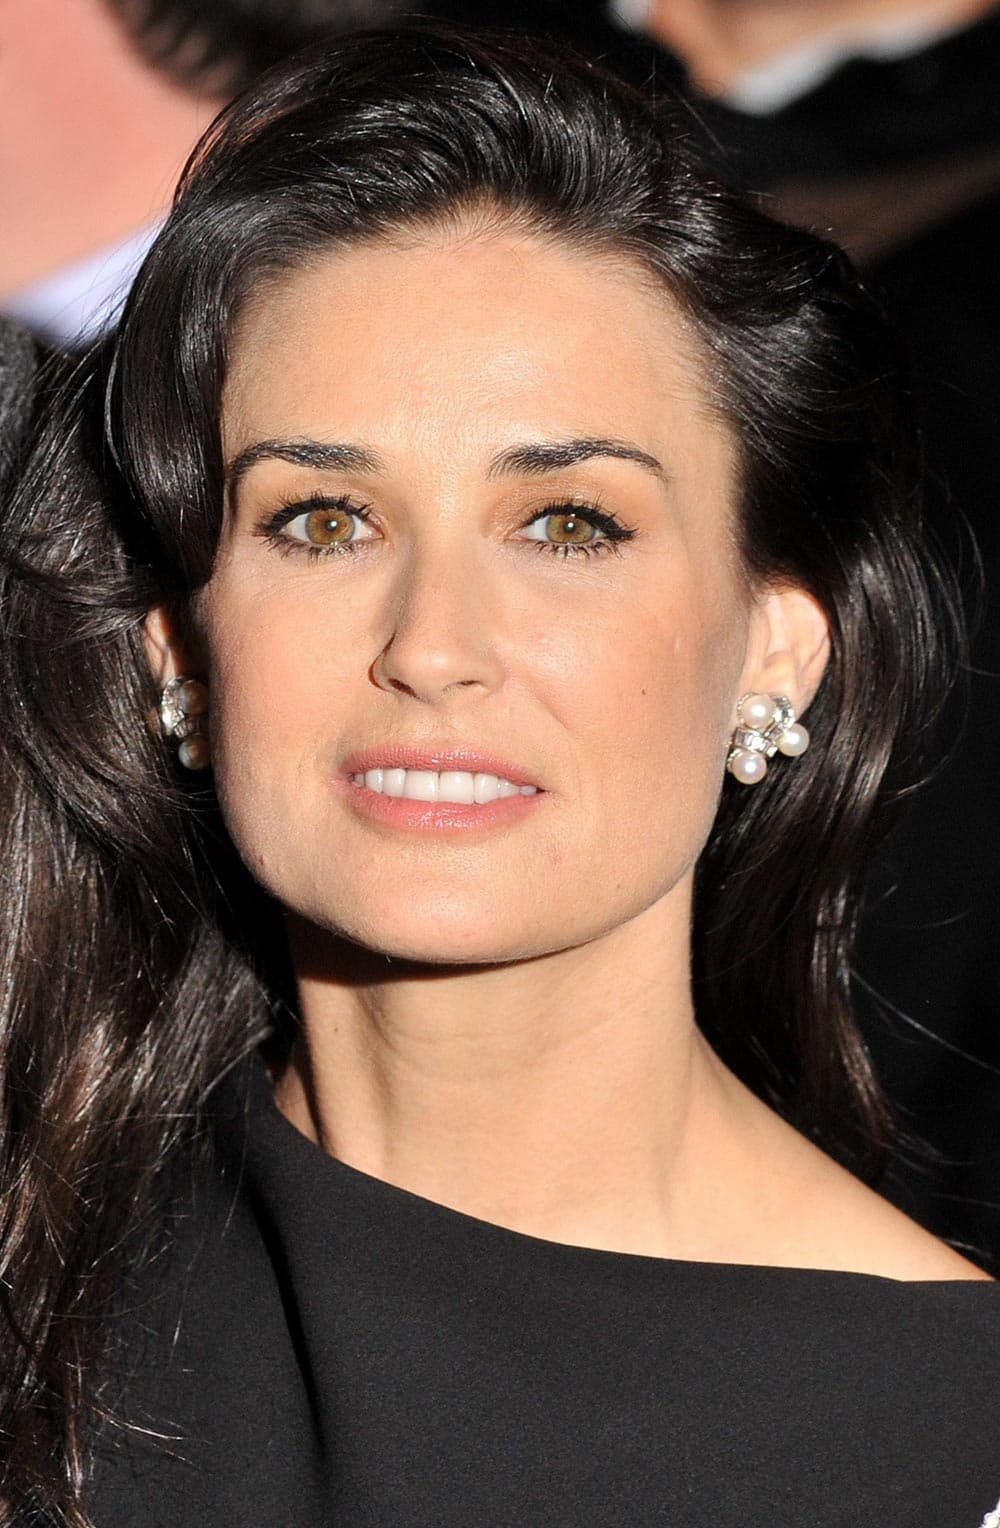 Demi Moore Plastic Surgery Before And After Photos photo - 1